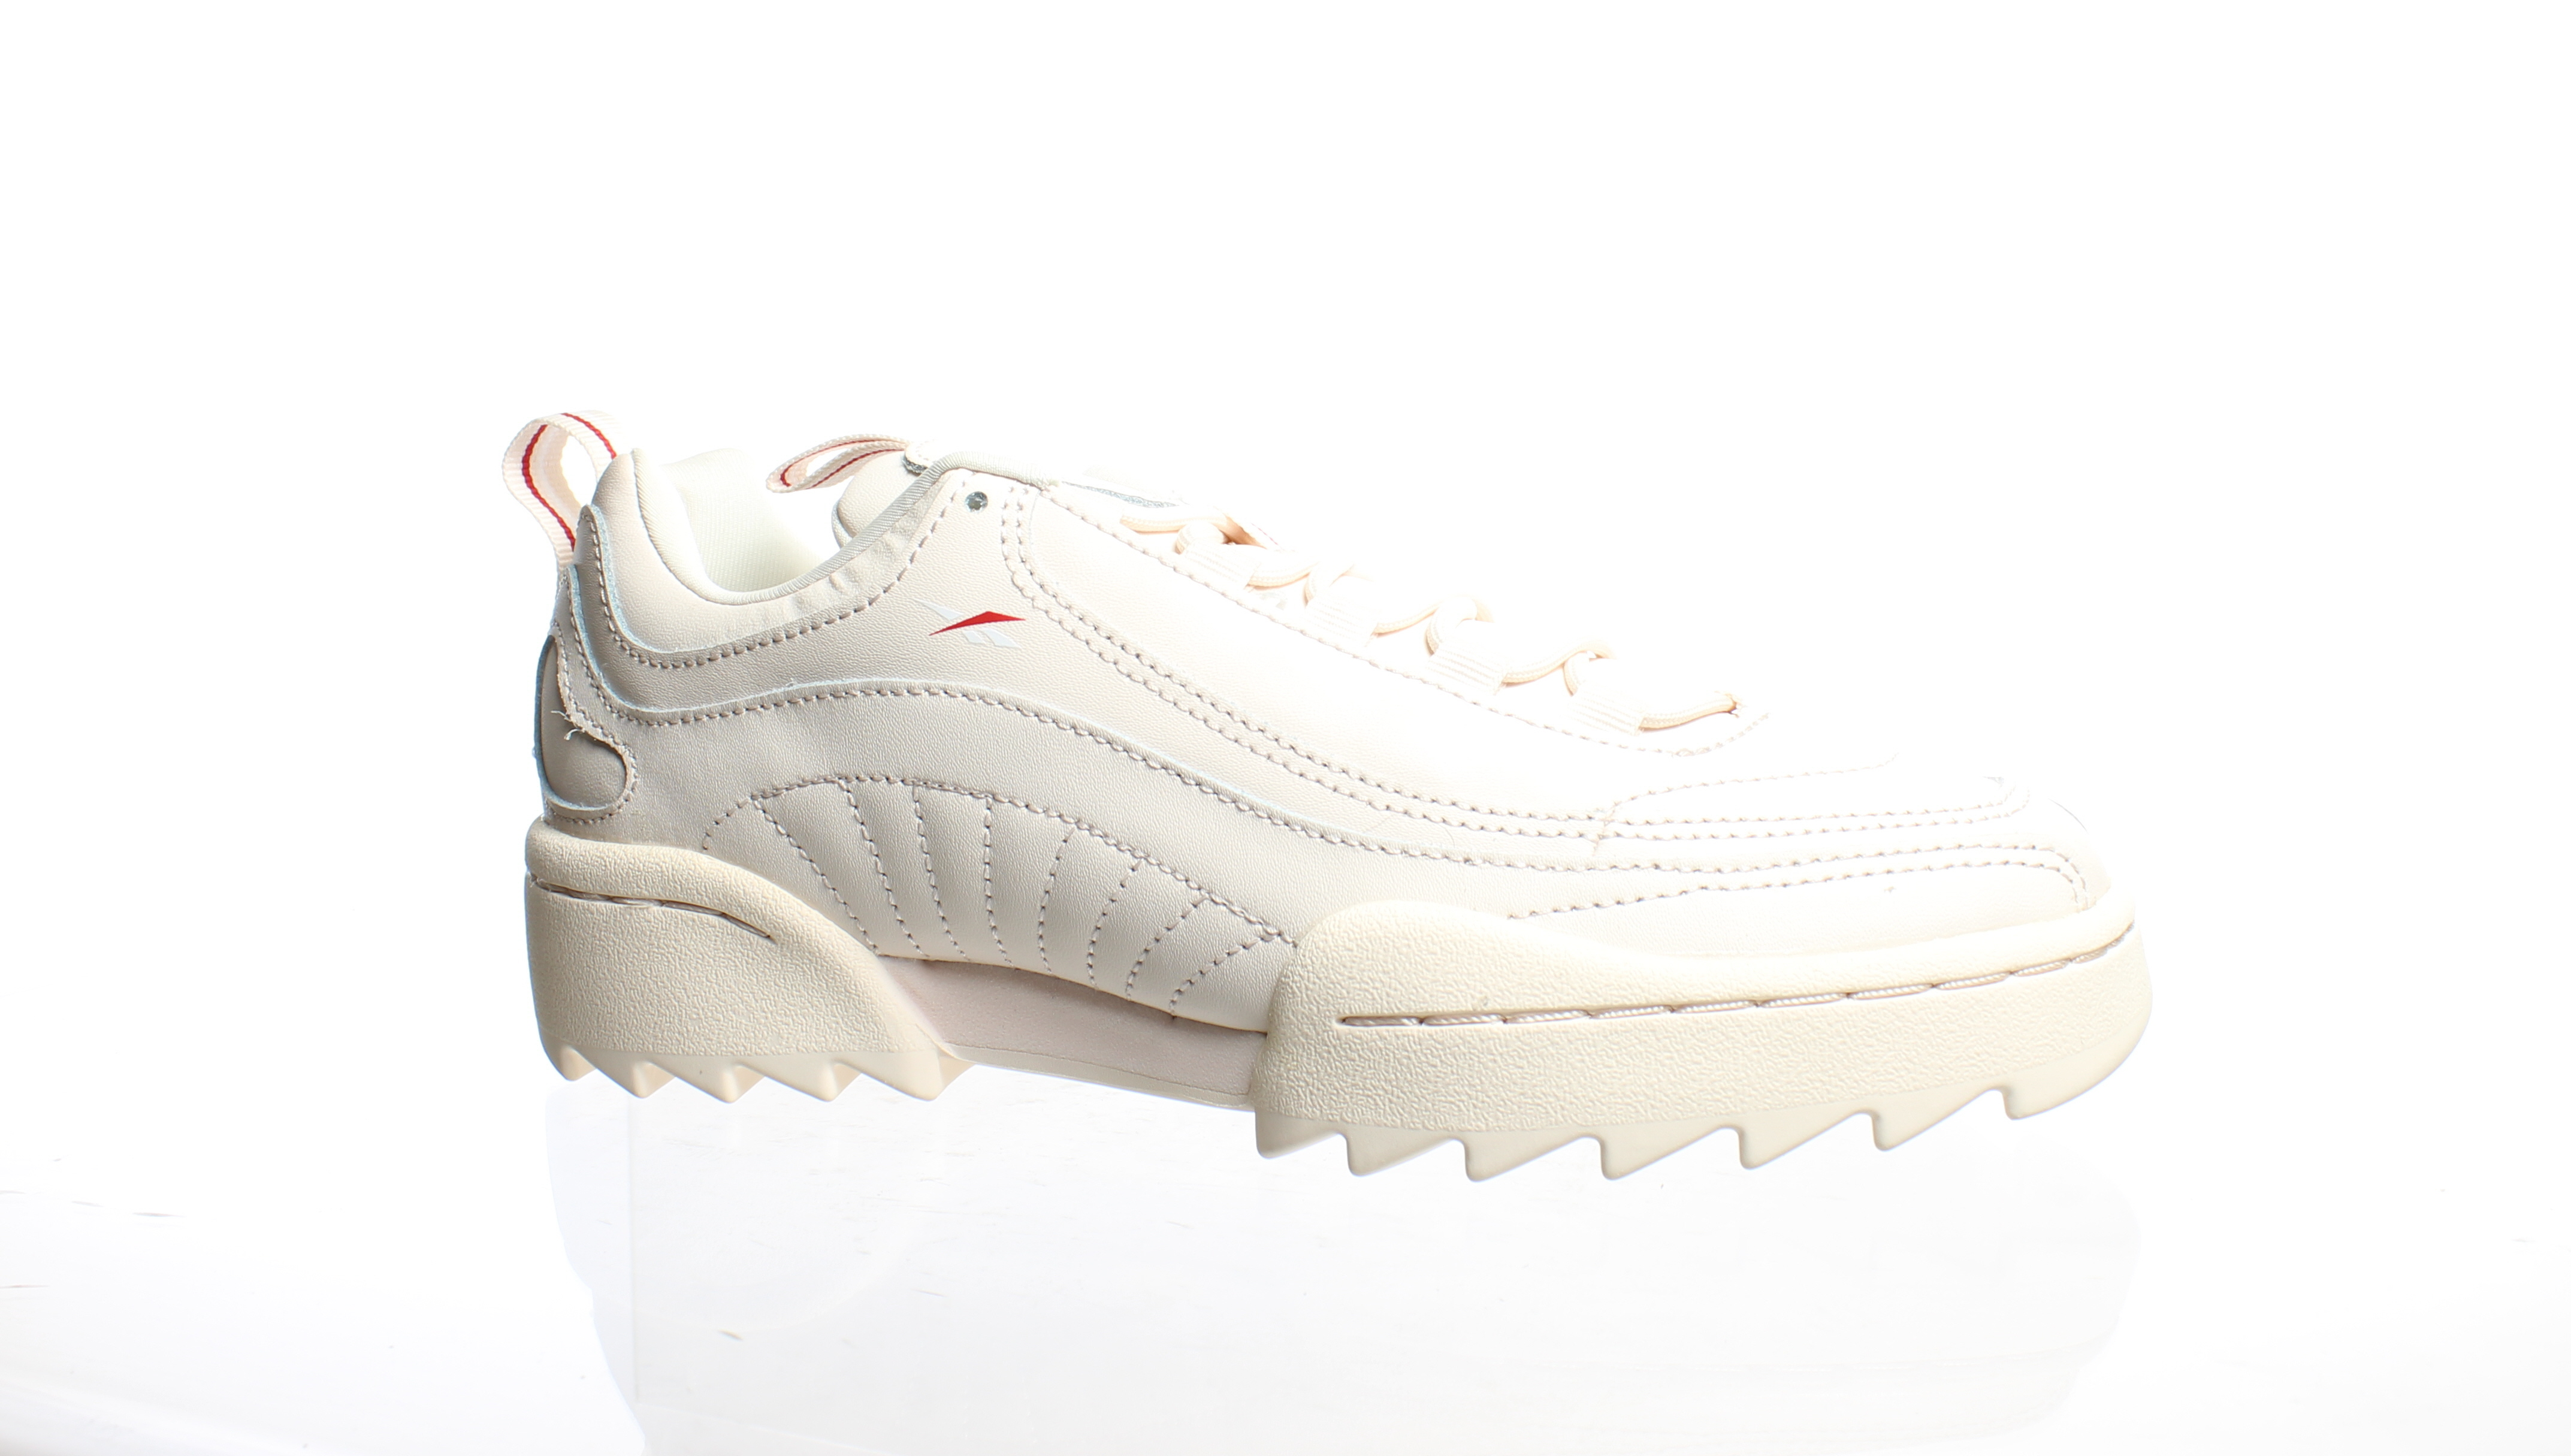 Details about Reebok Womens Ripple Peach Fashion Sneaker Size 6.5